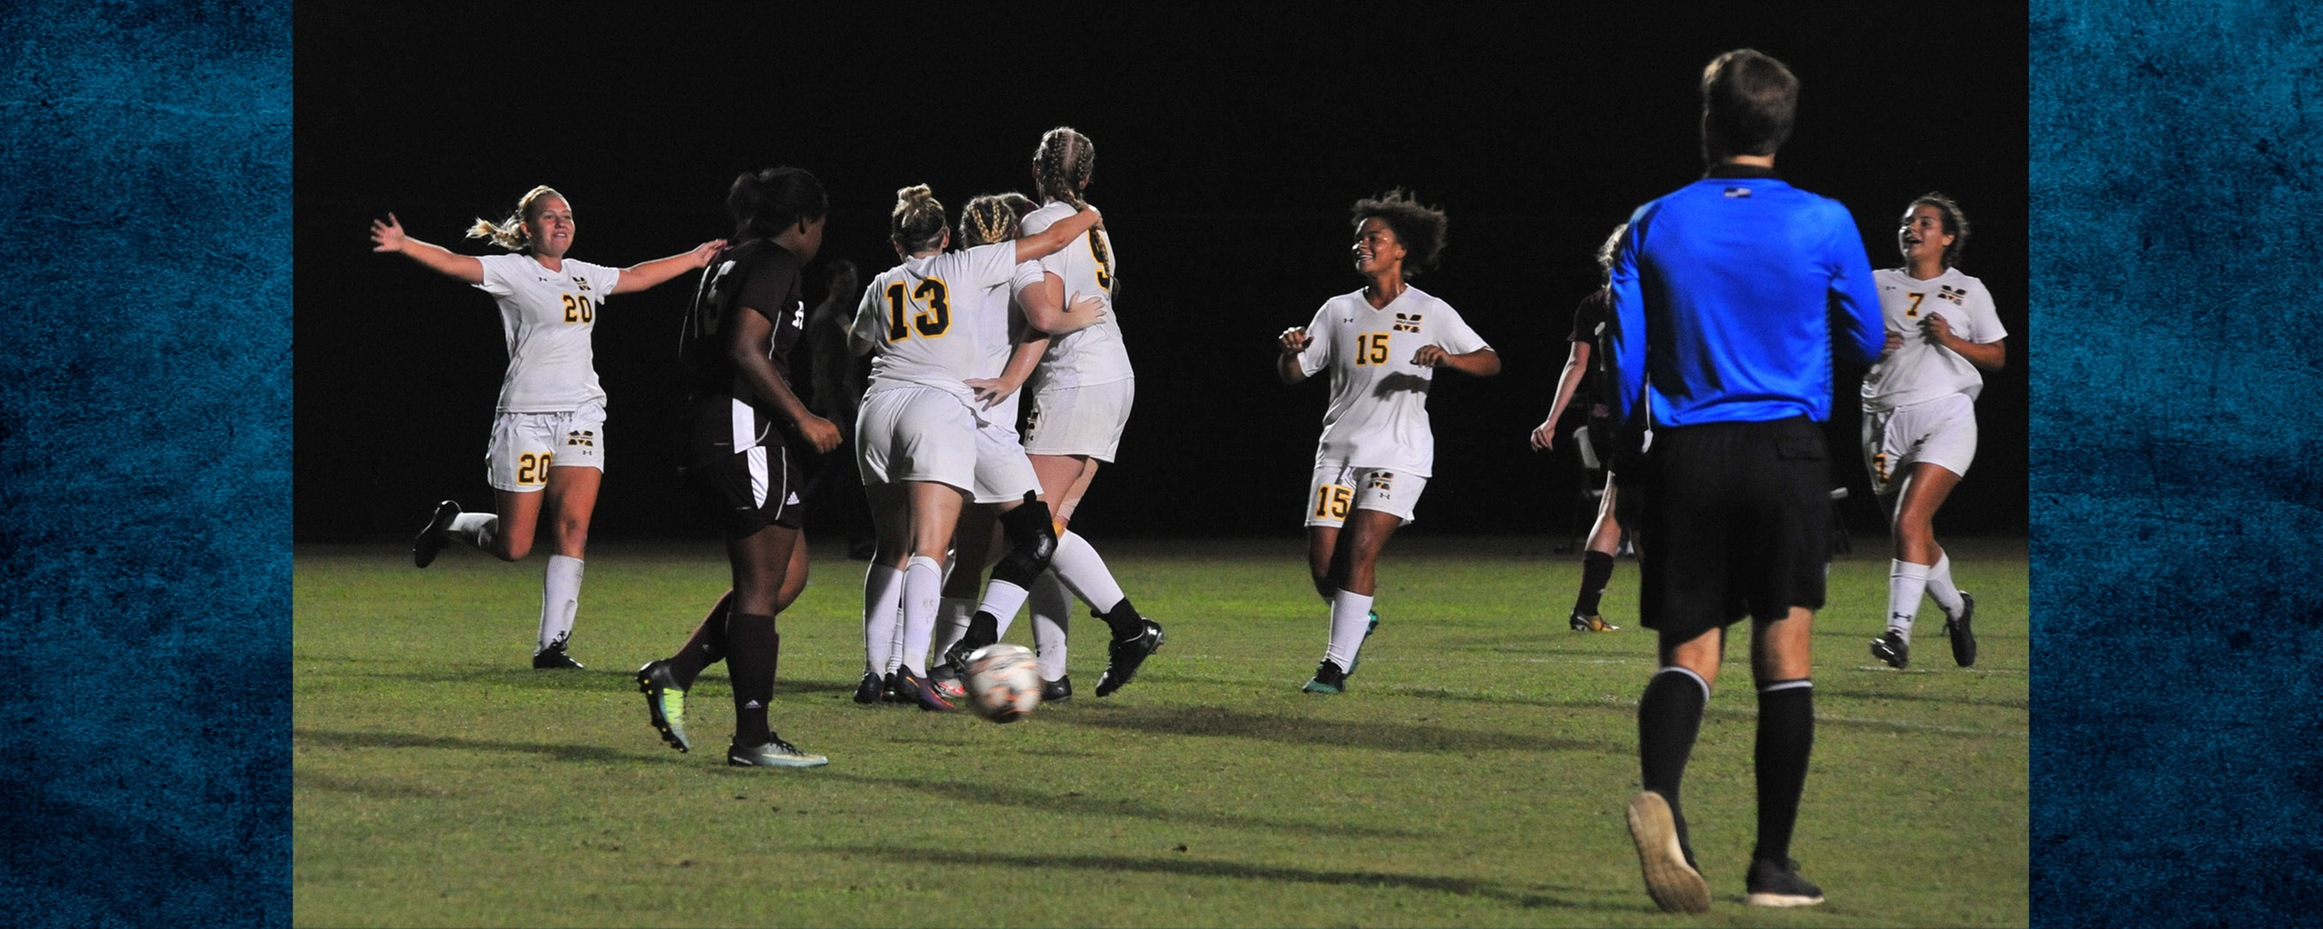 Helms, Fell team for 1-0 quarterfinal win